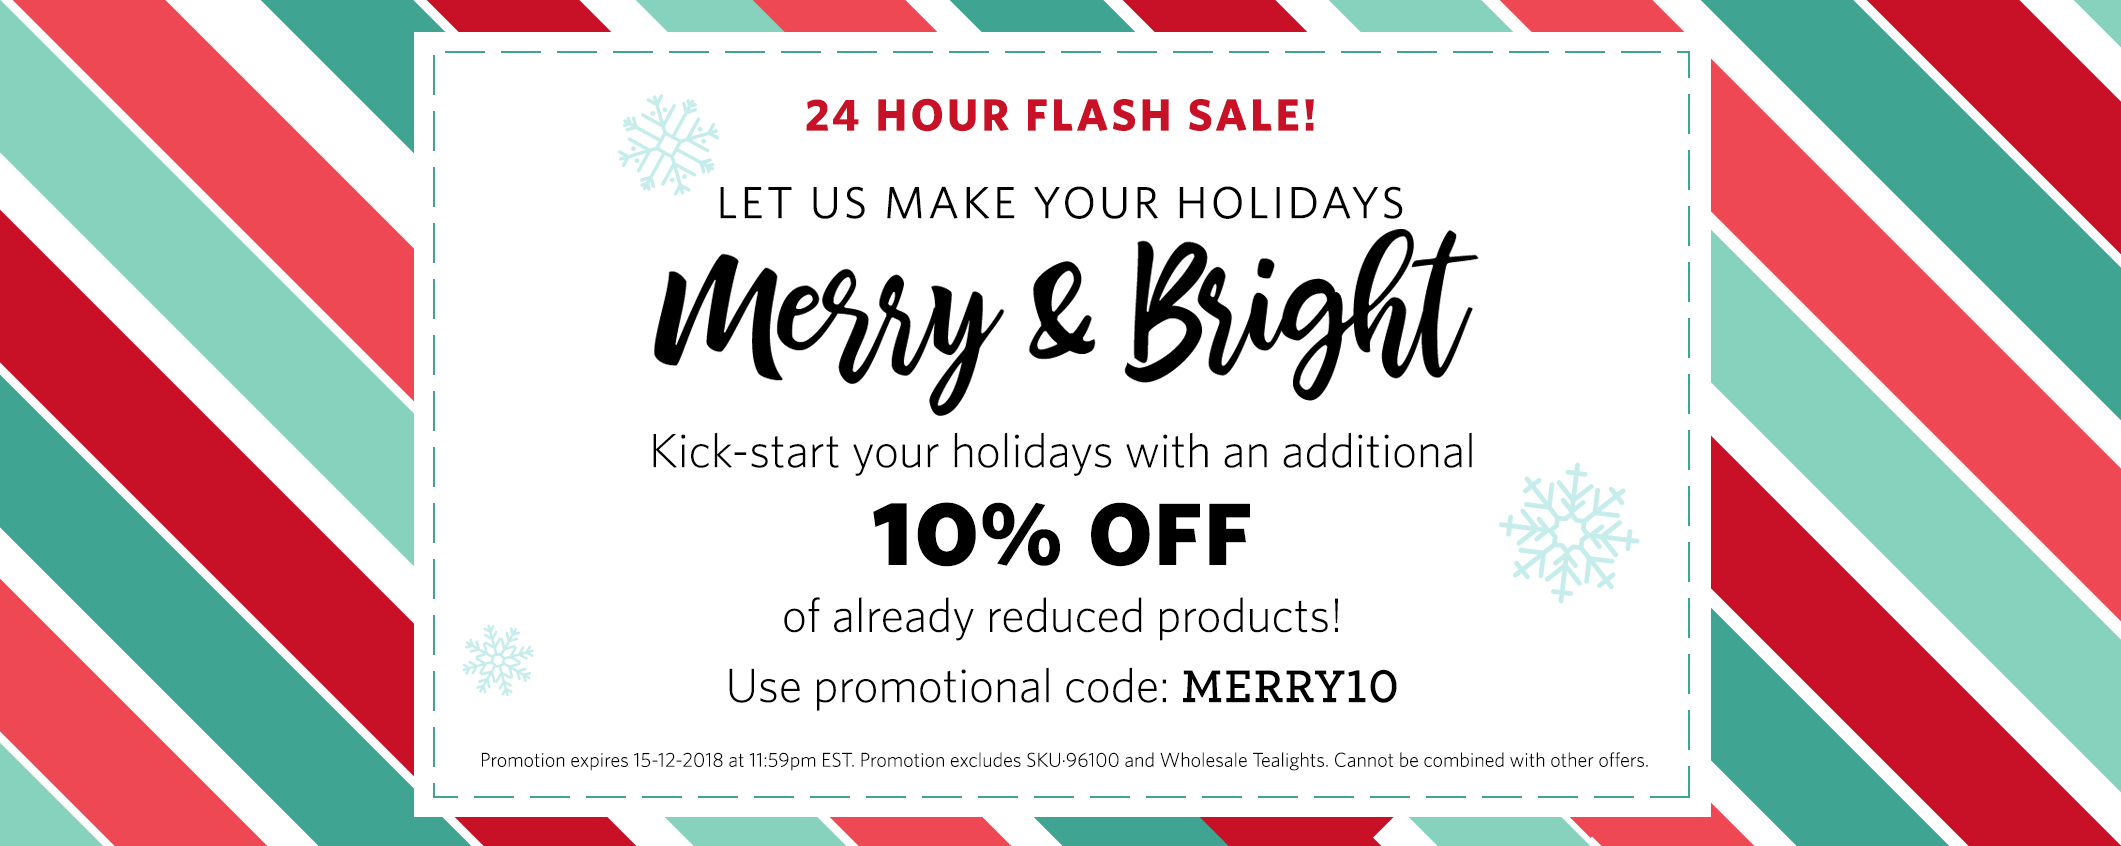 24 Hour Flash Sale! 10% Off your next purchase! Use code MERRY10 at checkout. Expires 15-12-2018 at 11:59pm. Excludes SKU96100 and wholesale tealights. Can not be combined with other offers.